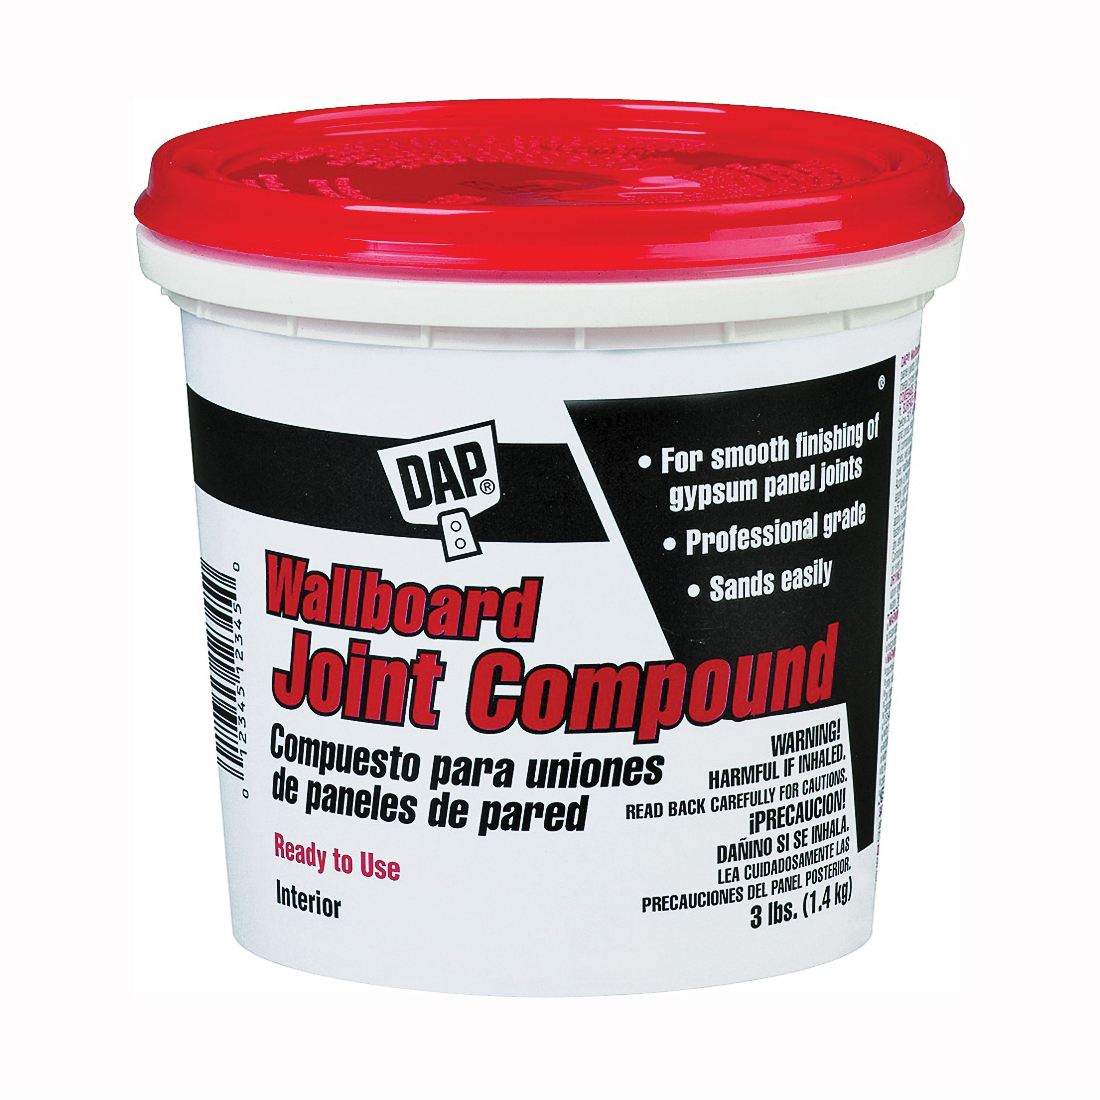 Picture of DAP 10100 Joint Compound, Paste, Off-White, 3 lb Package, Tub